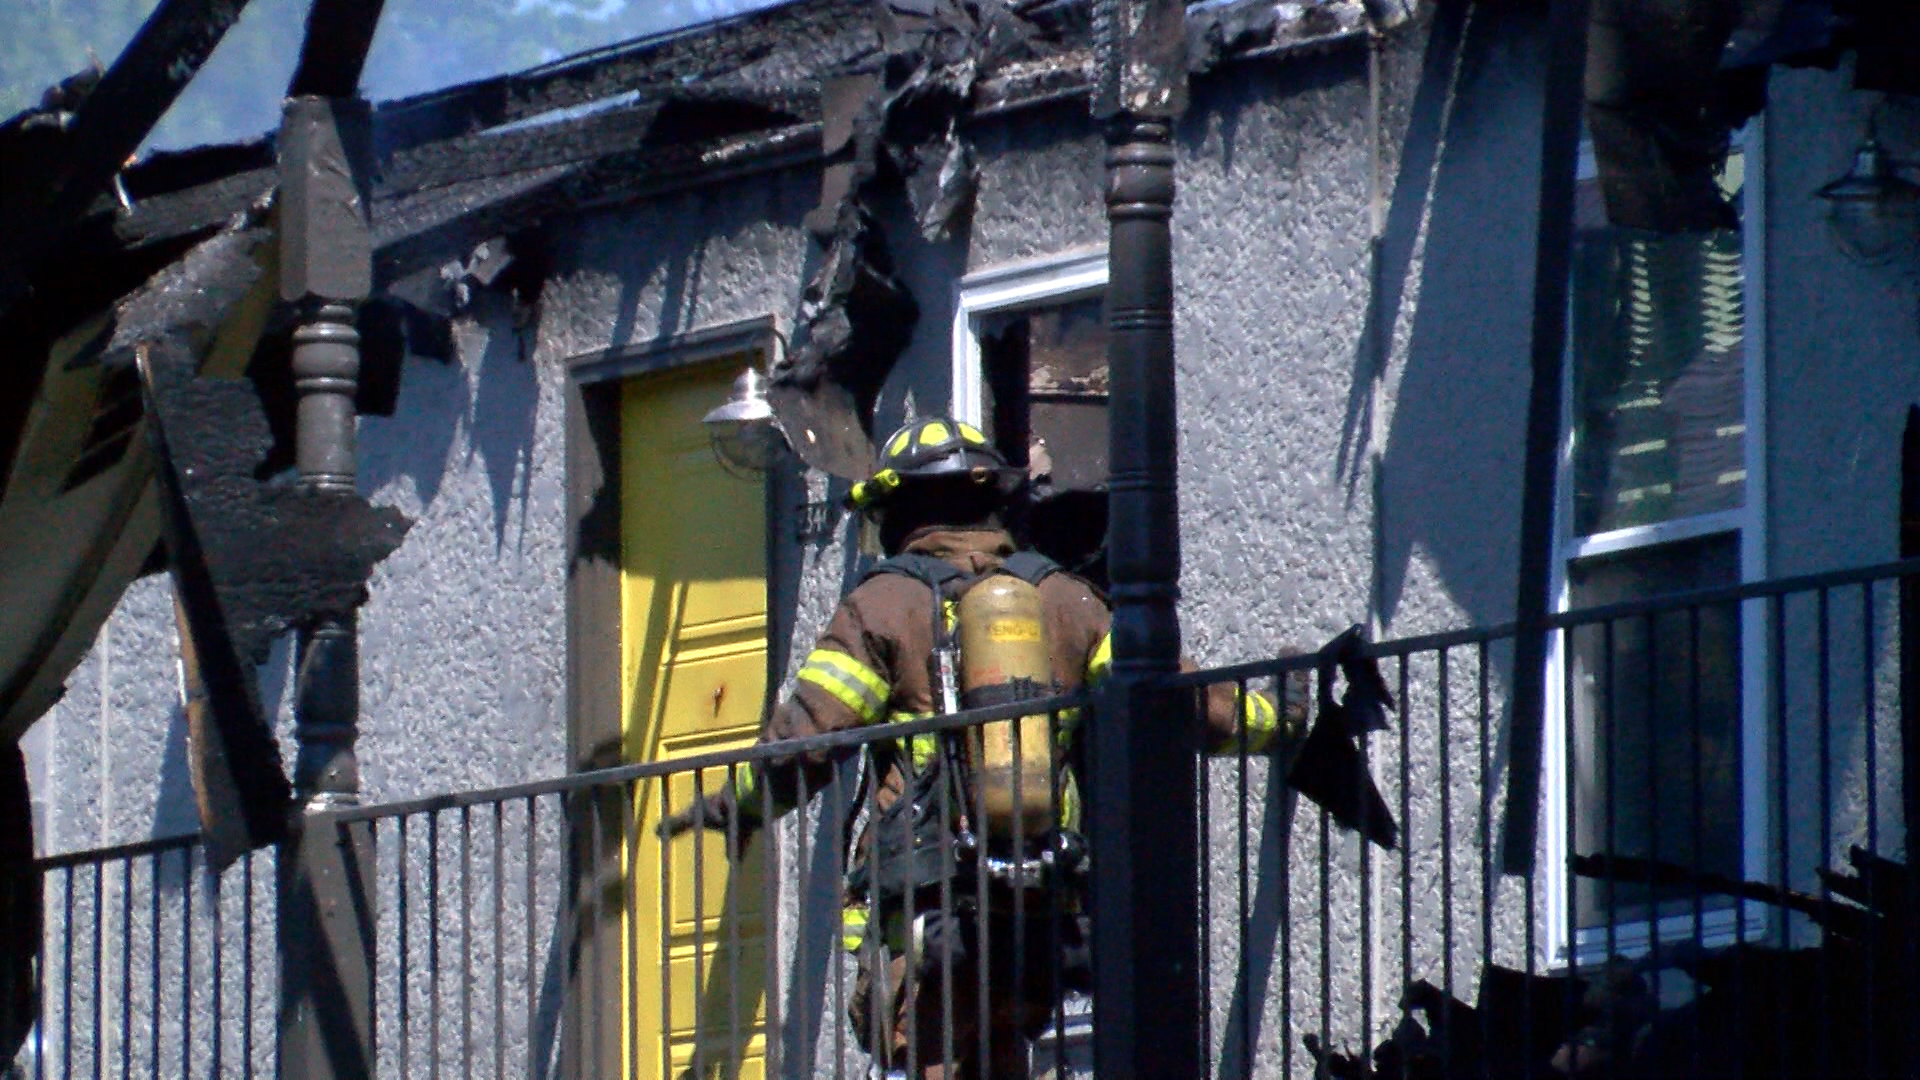 APARTMENT FIRE_1494118320932.jpg